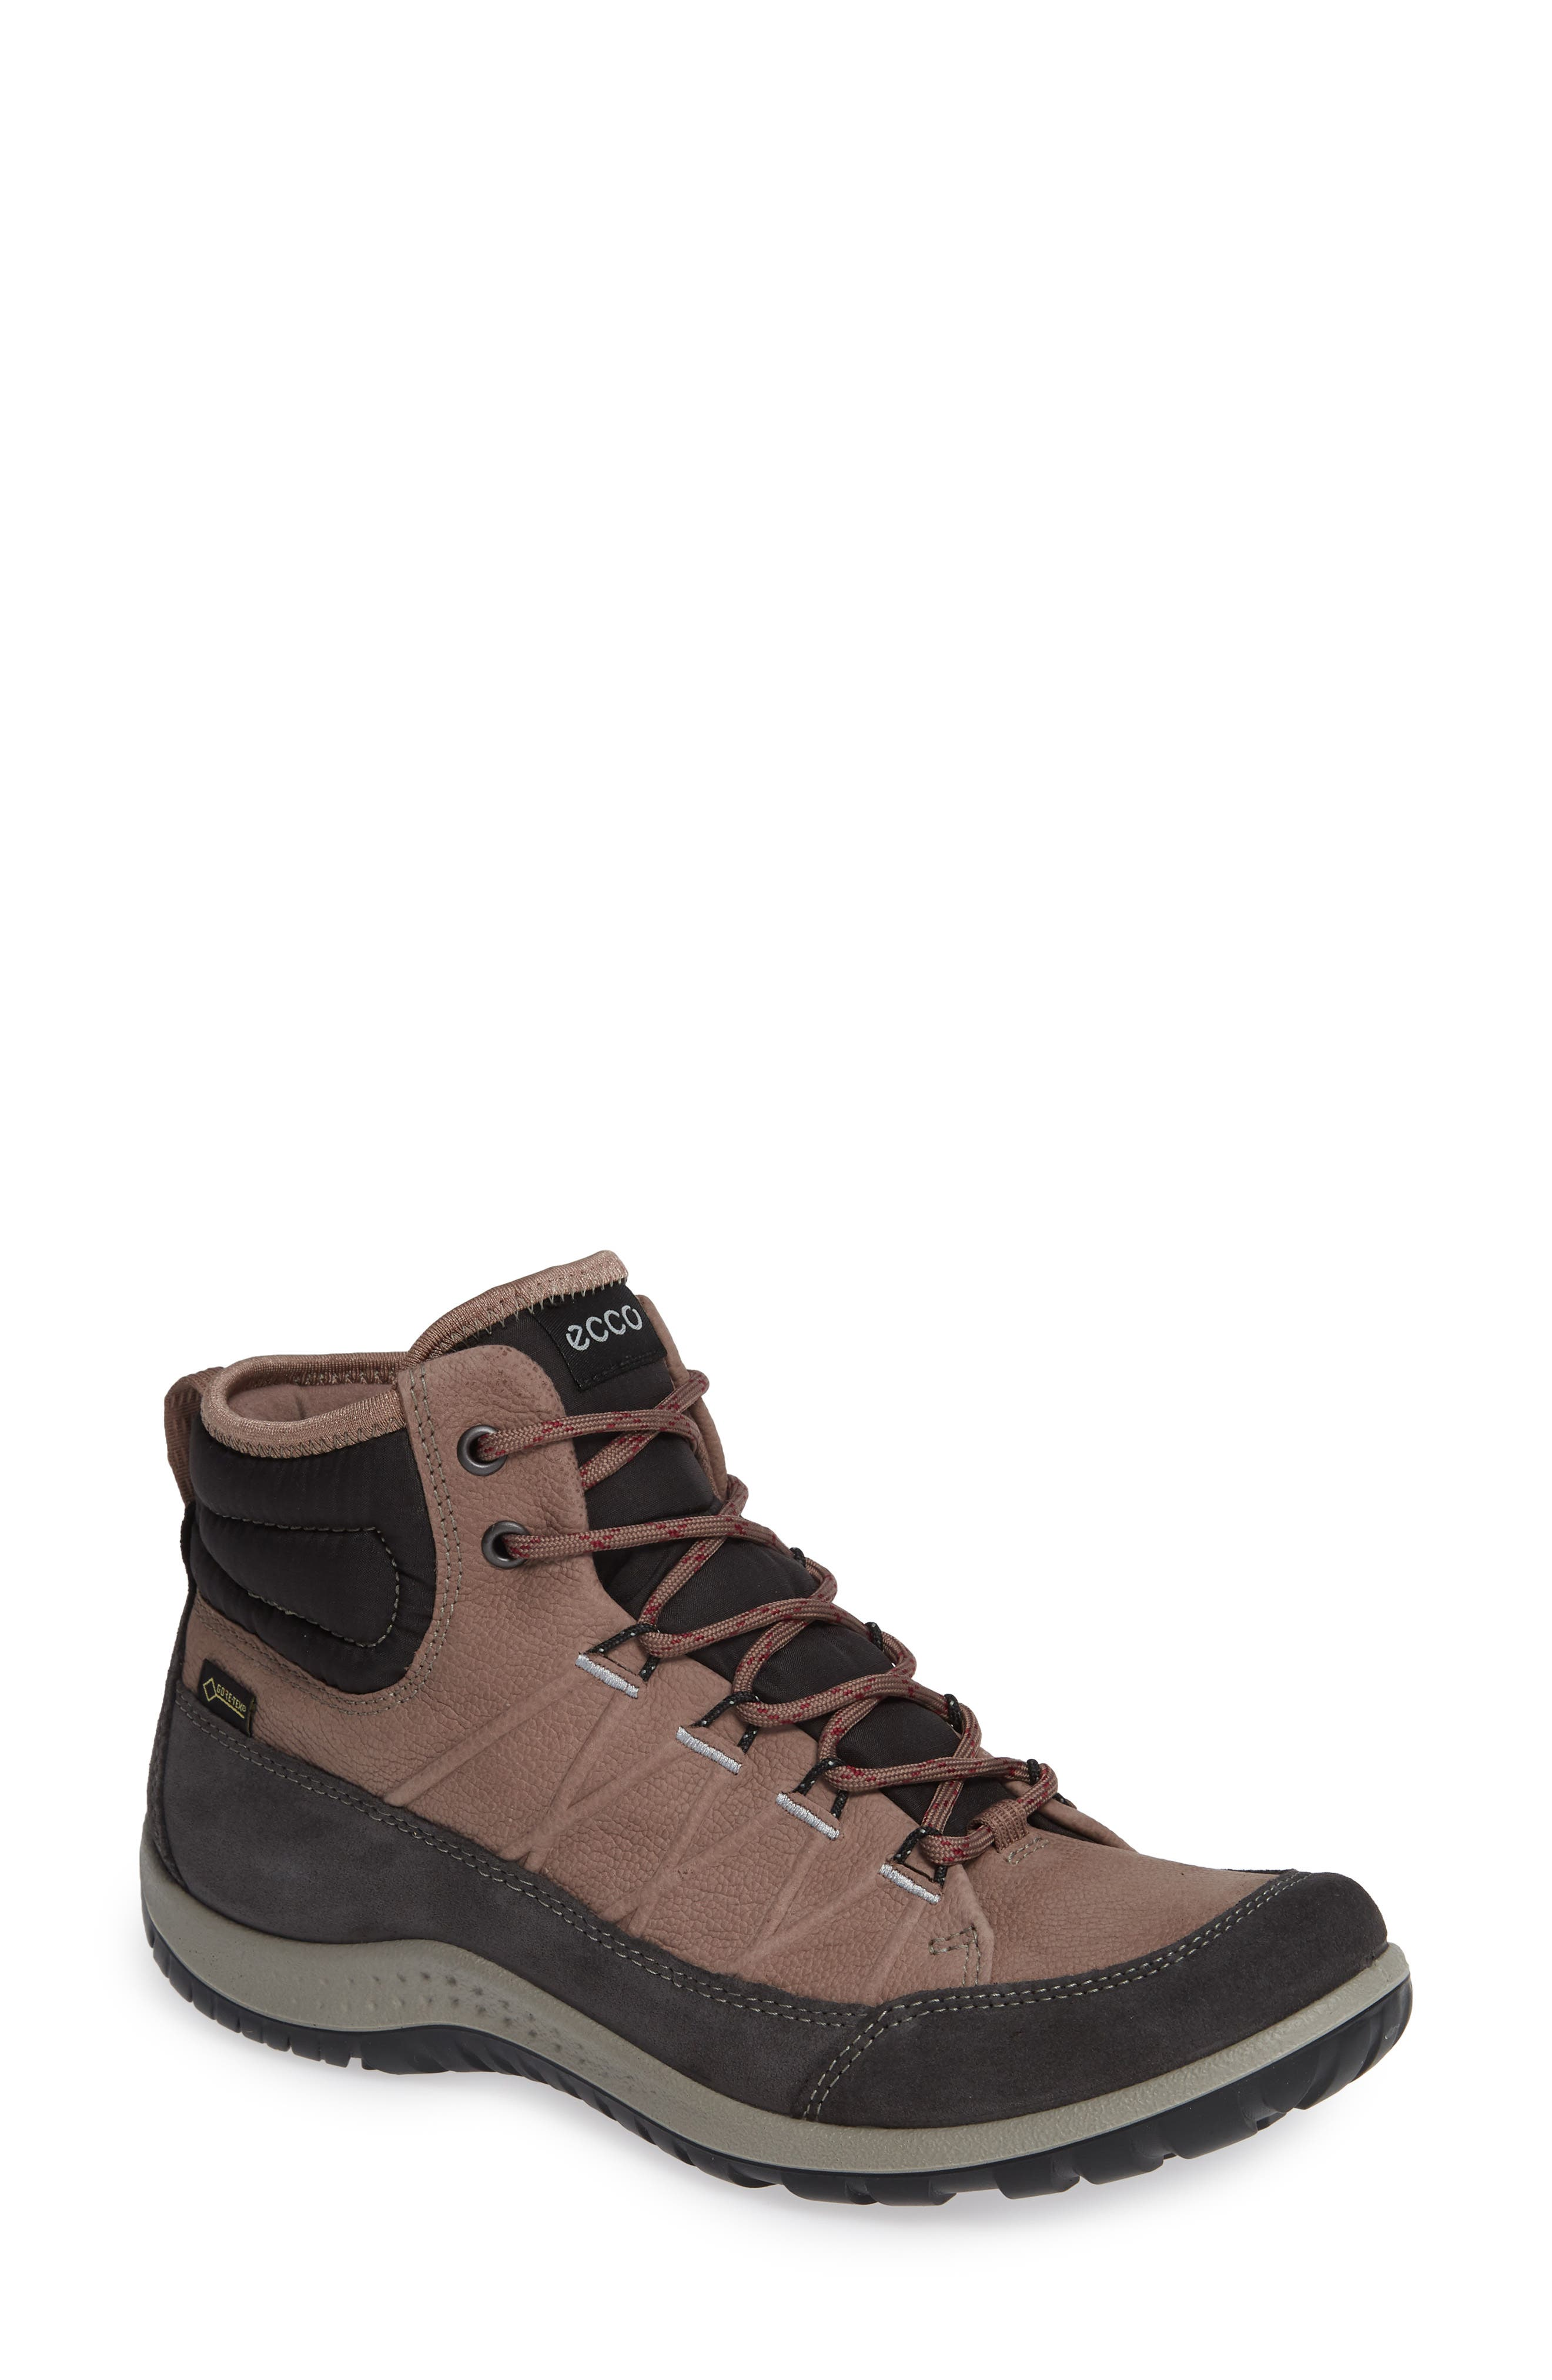 UPC 809704554532 product image for Women's Ecco 'Aspina Gtx' Waterproof High Top Shoe, Size 6-6.5US / 37EU - Grey | upcitemdb.com